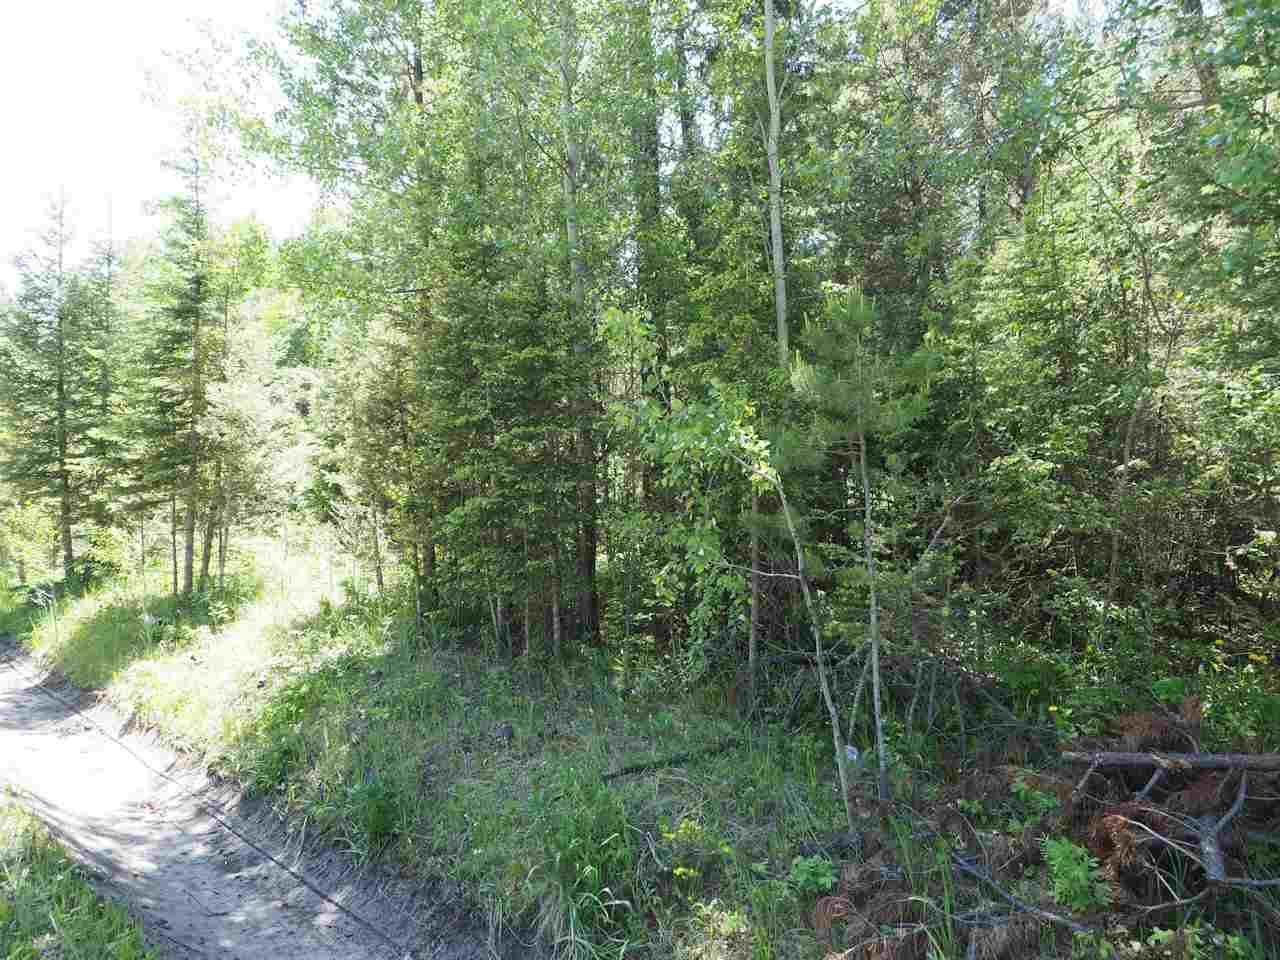 Photo 6: Photos: LOT 9 EASZEE Drive in 108 Mile Ranch: 108 Ranch Land for sale (100 Mile House (Zone 10))  : MLS®# R2467252